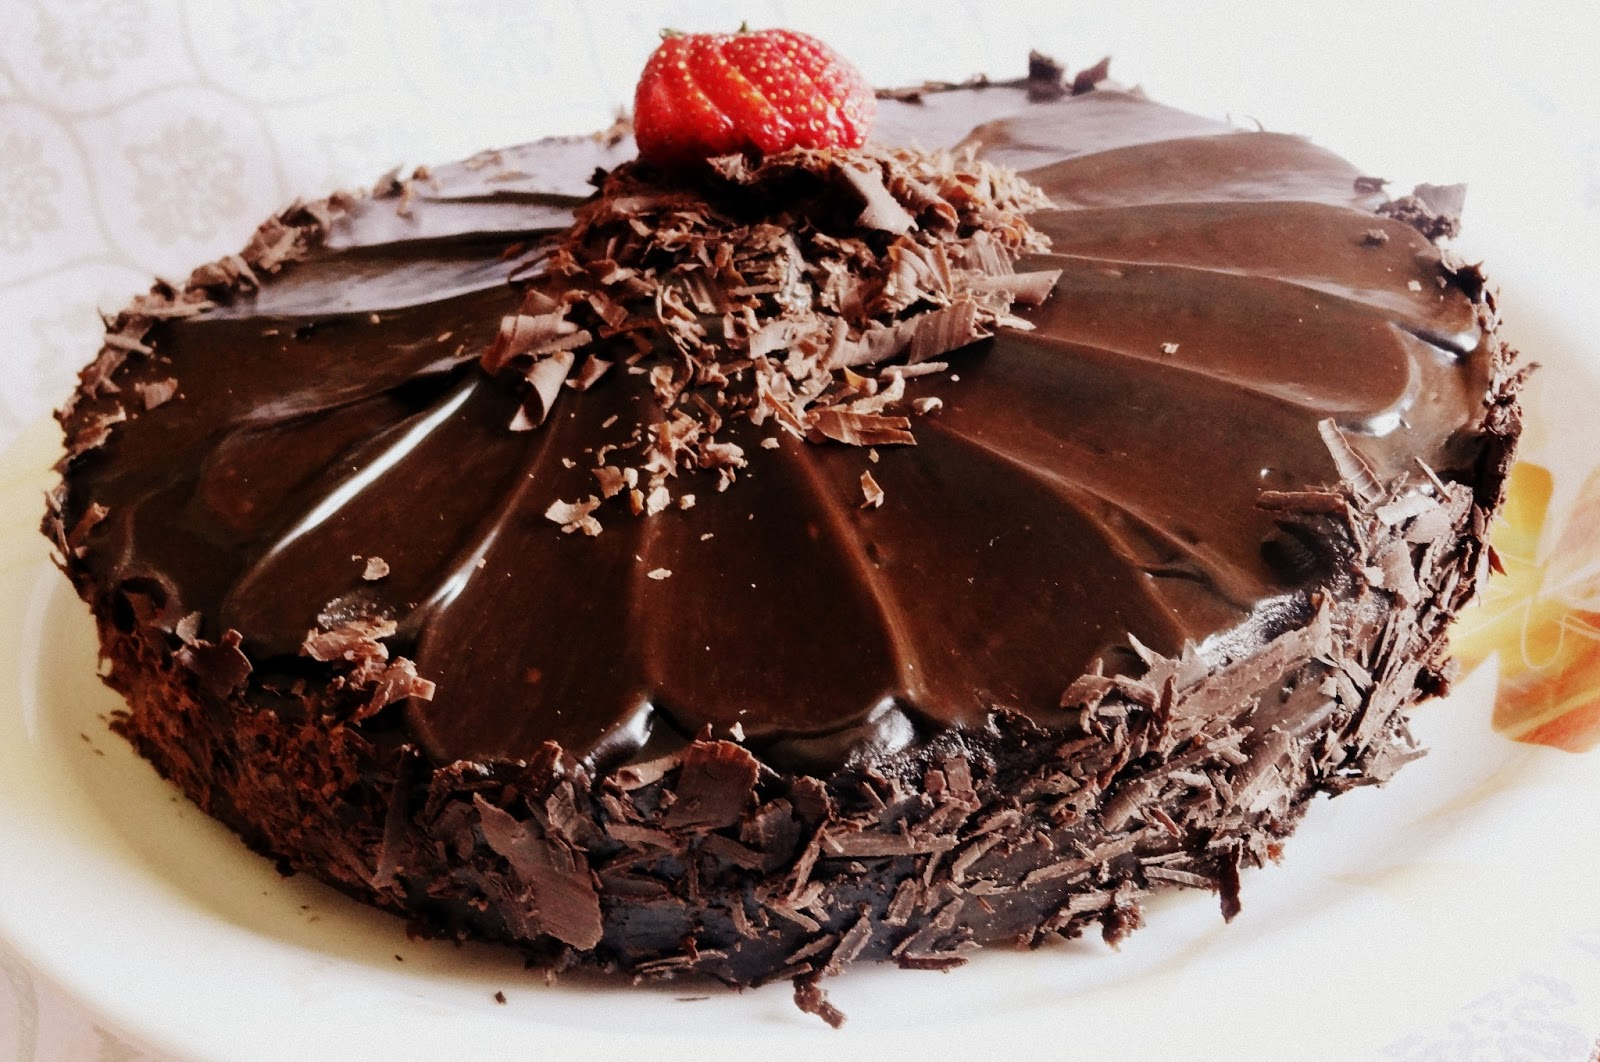 Chocolate Truffle Cake Images : Soniaz Delights: The Best Eggless Chocolate Truffle Cake ...